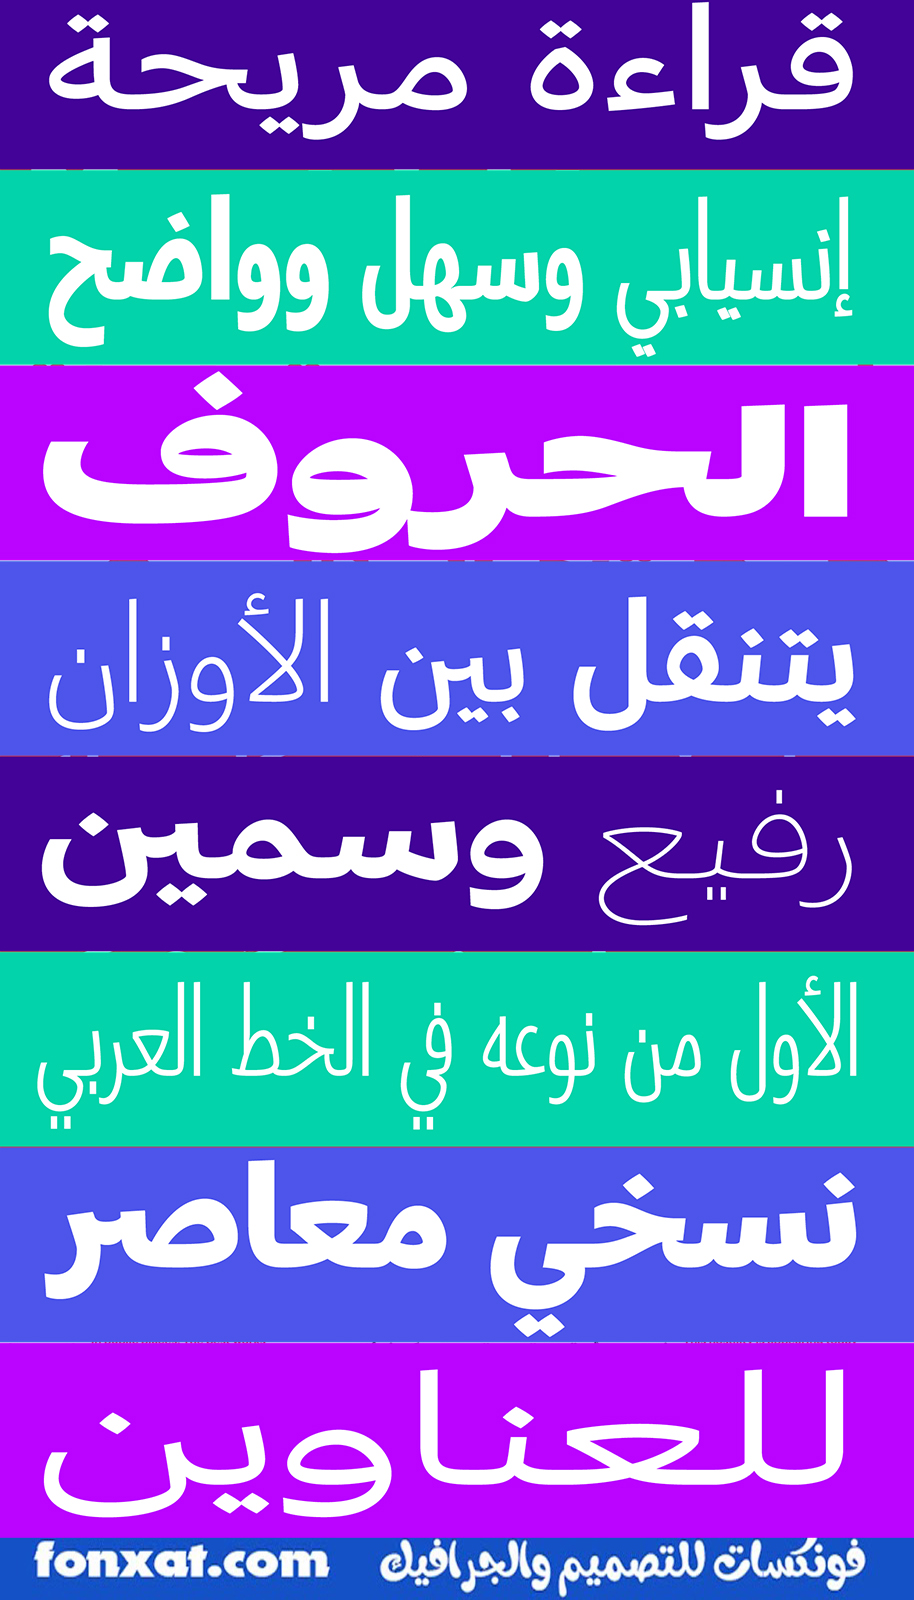 Download the Arabic Greta font for design in beautiful and simple font